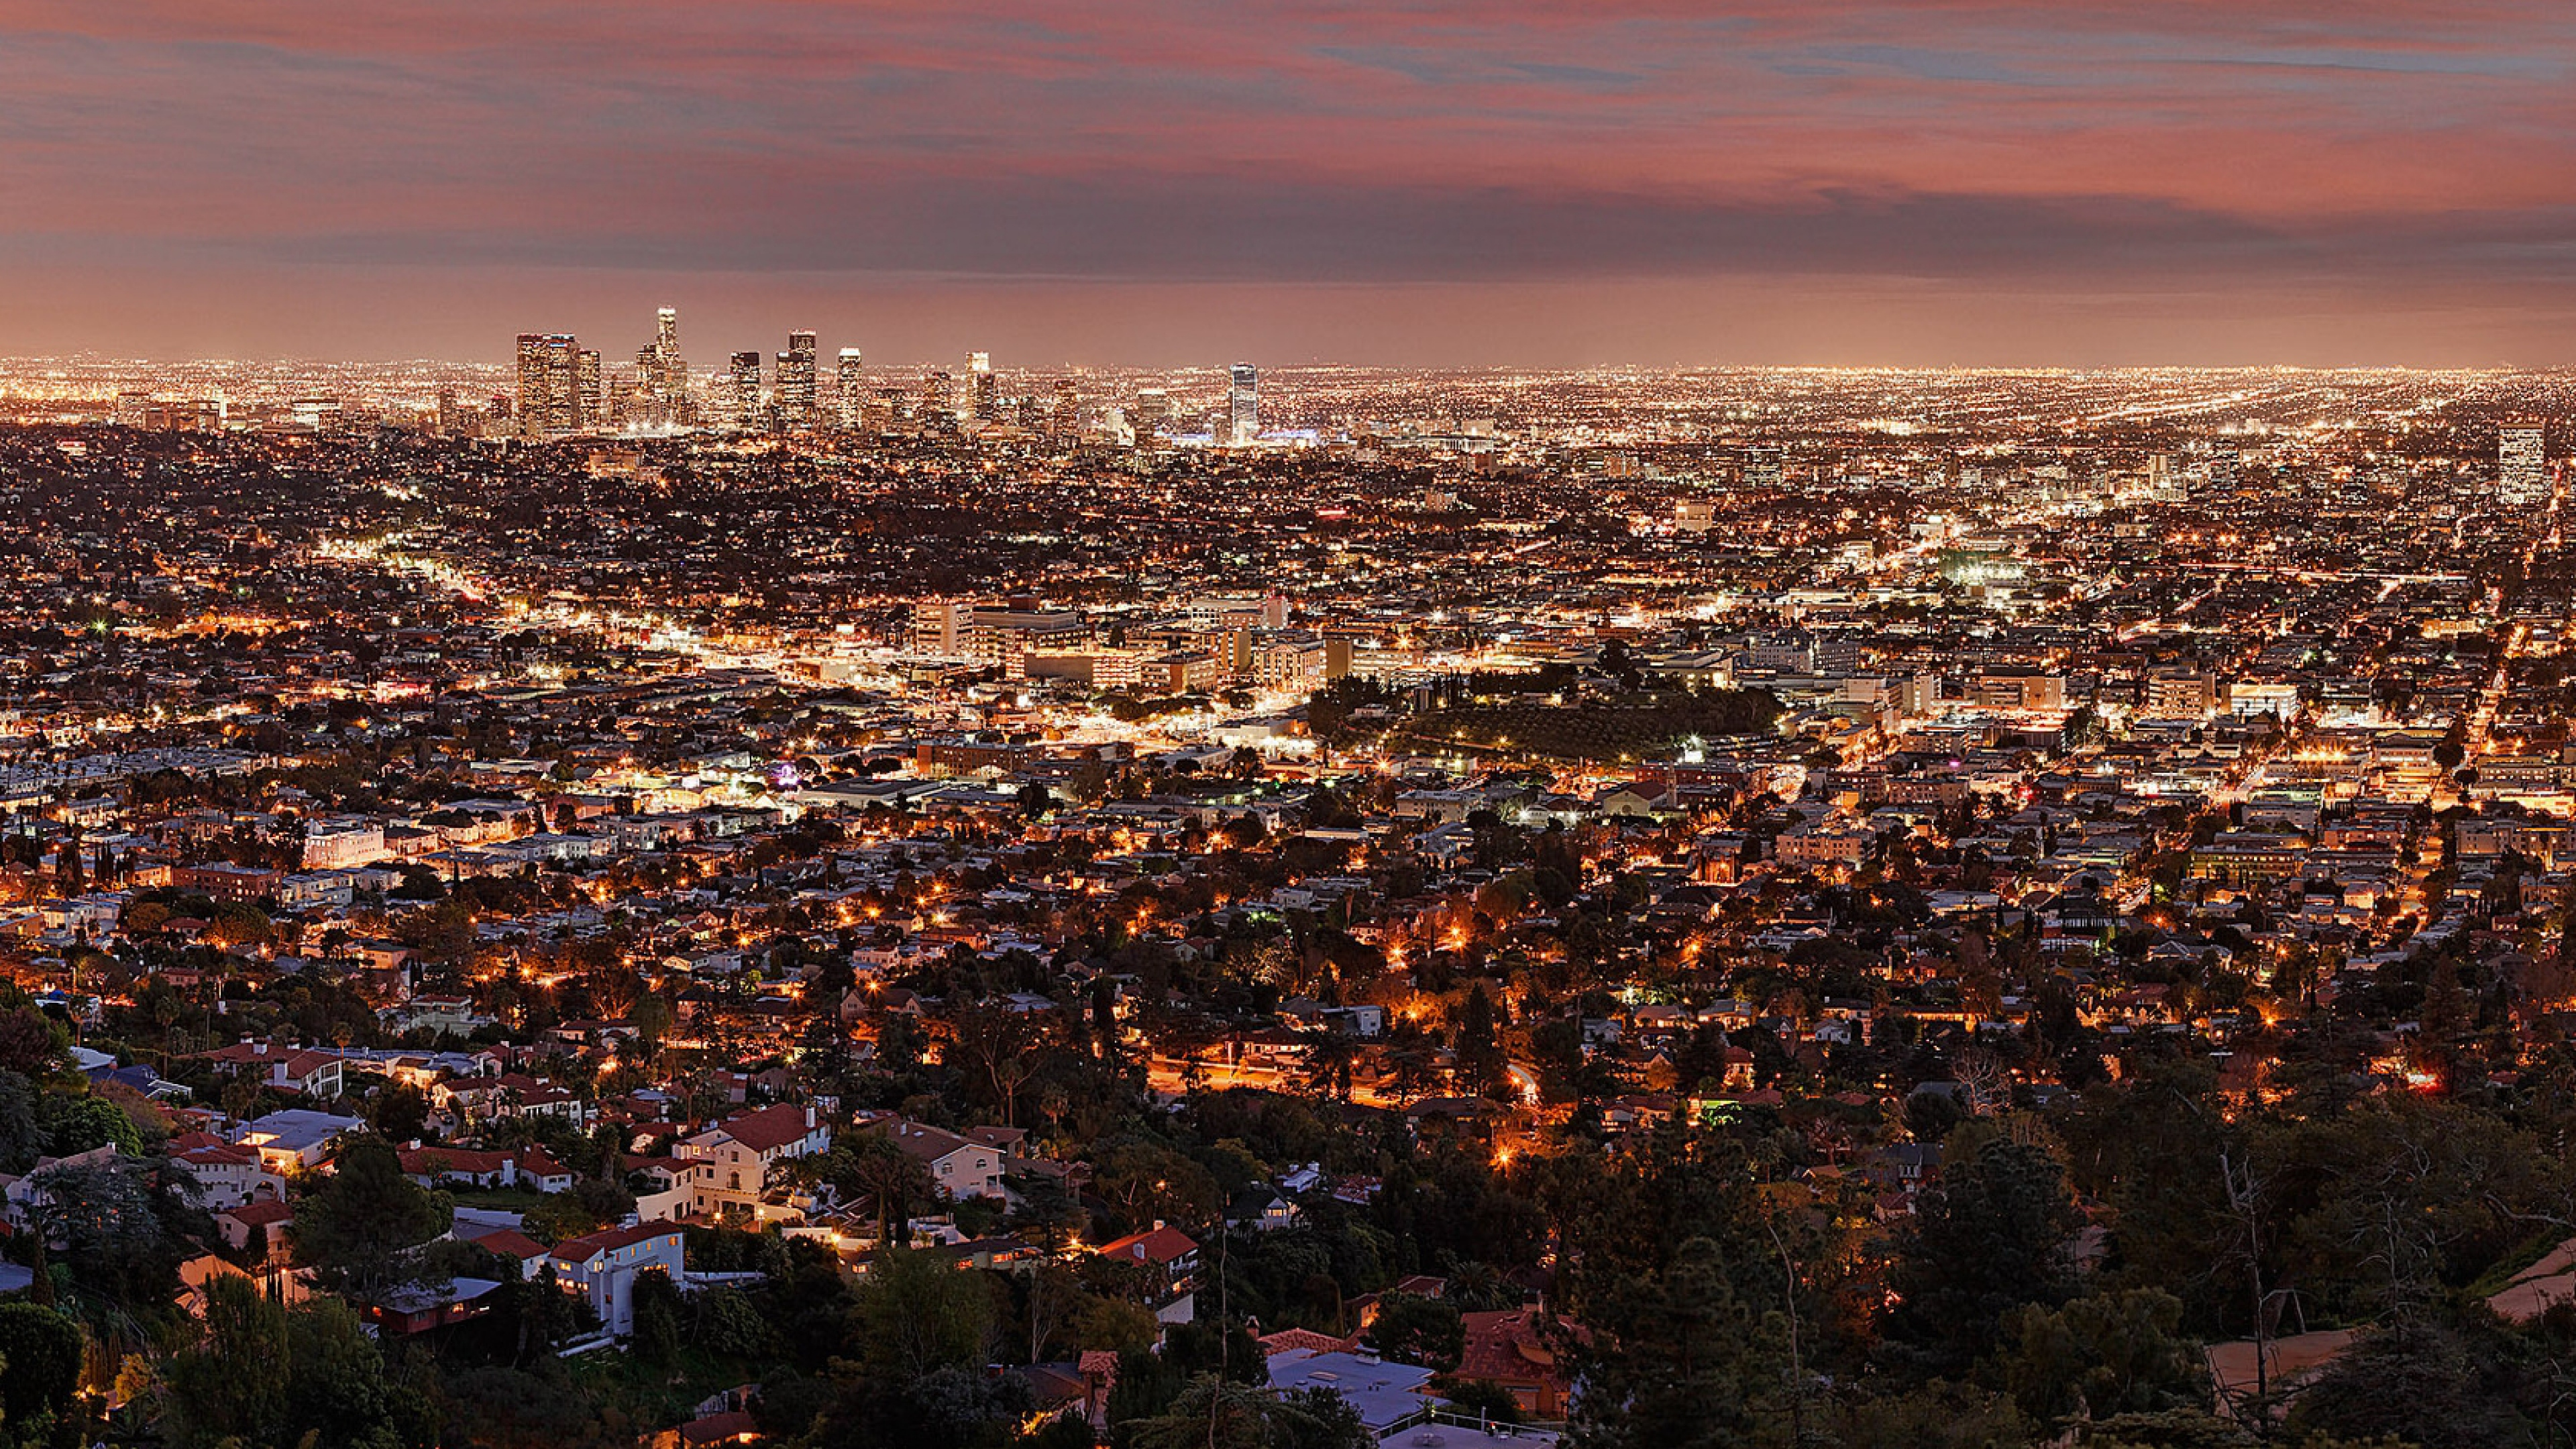 Wallpaper 3840x2160 los angeles night view from above city 4K 3840x2160